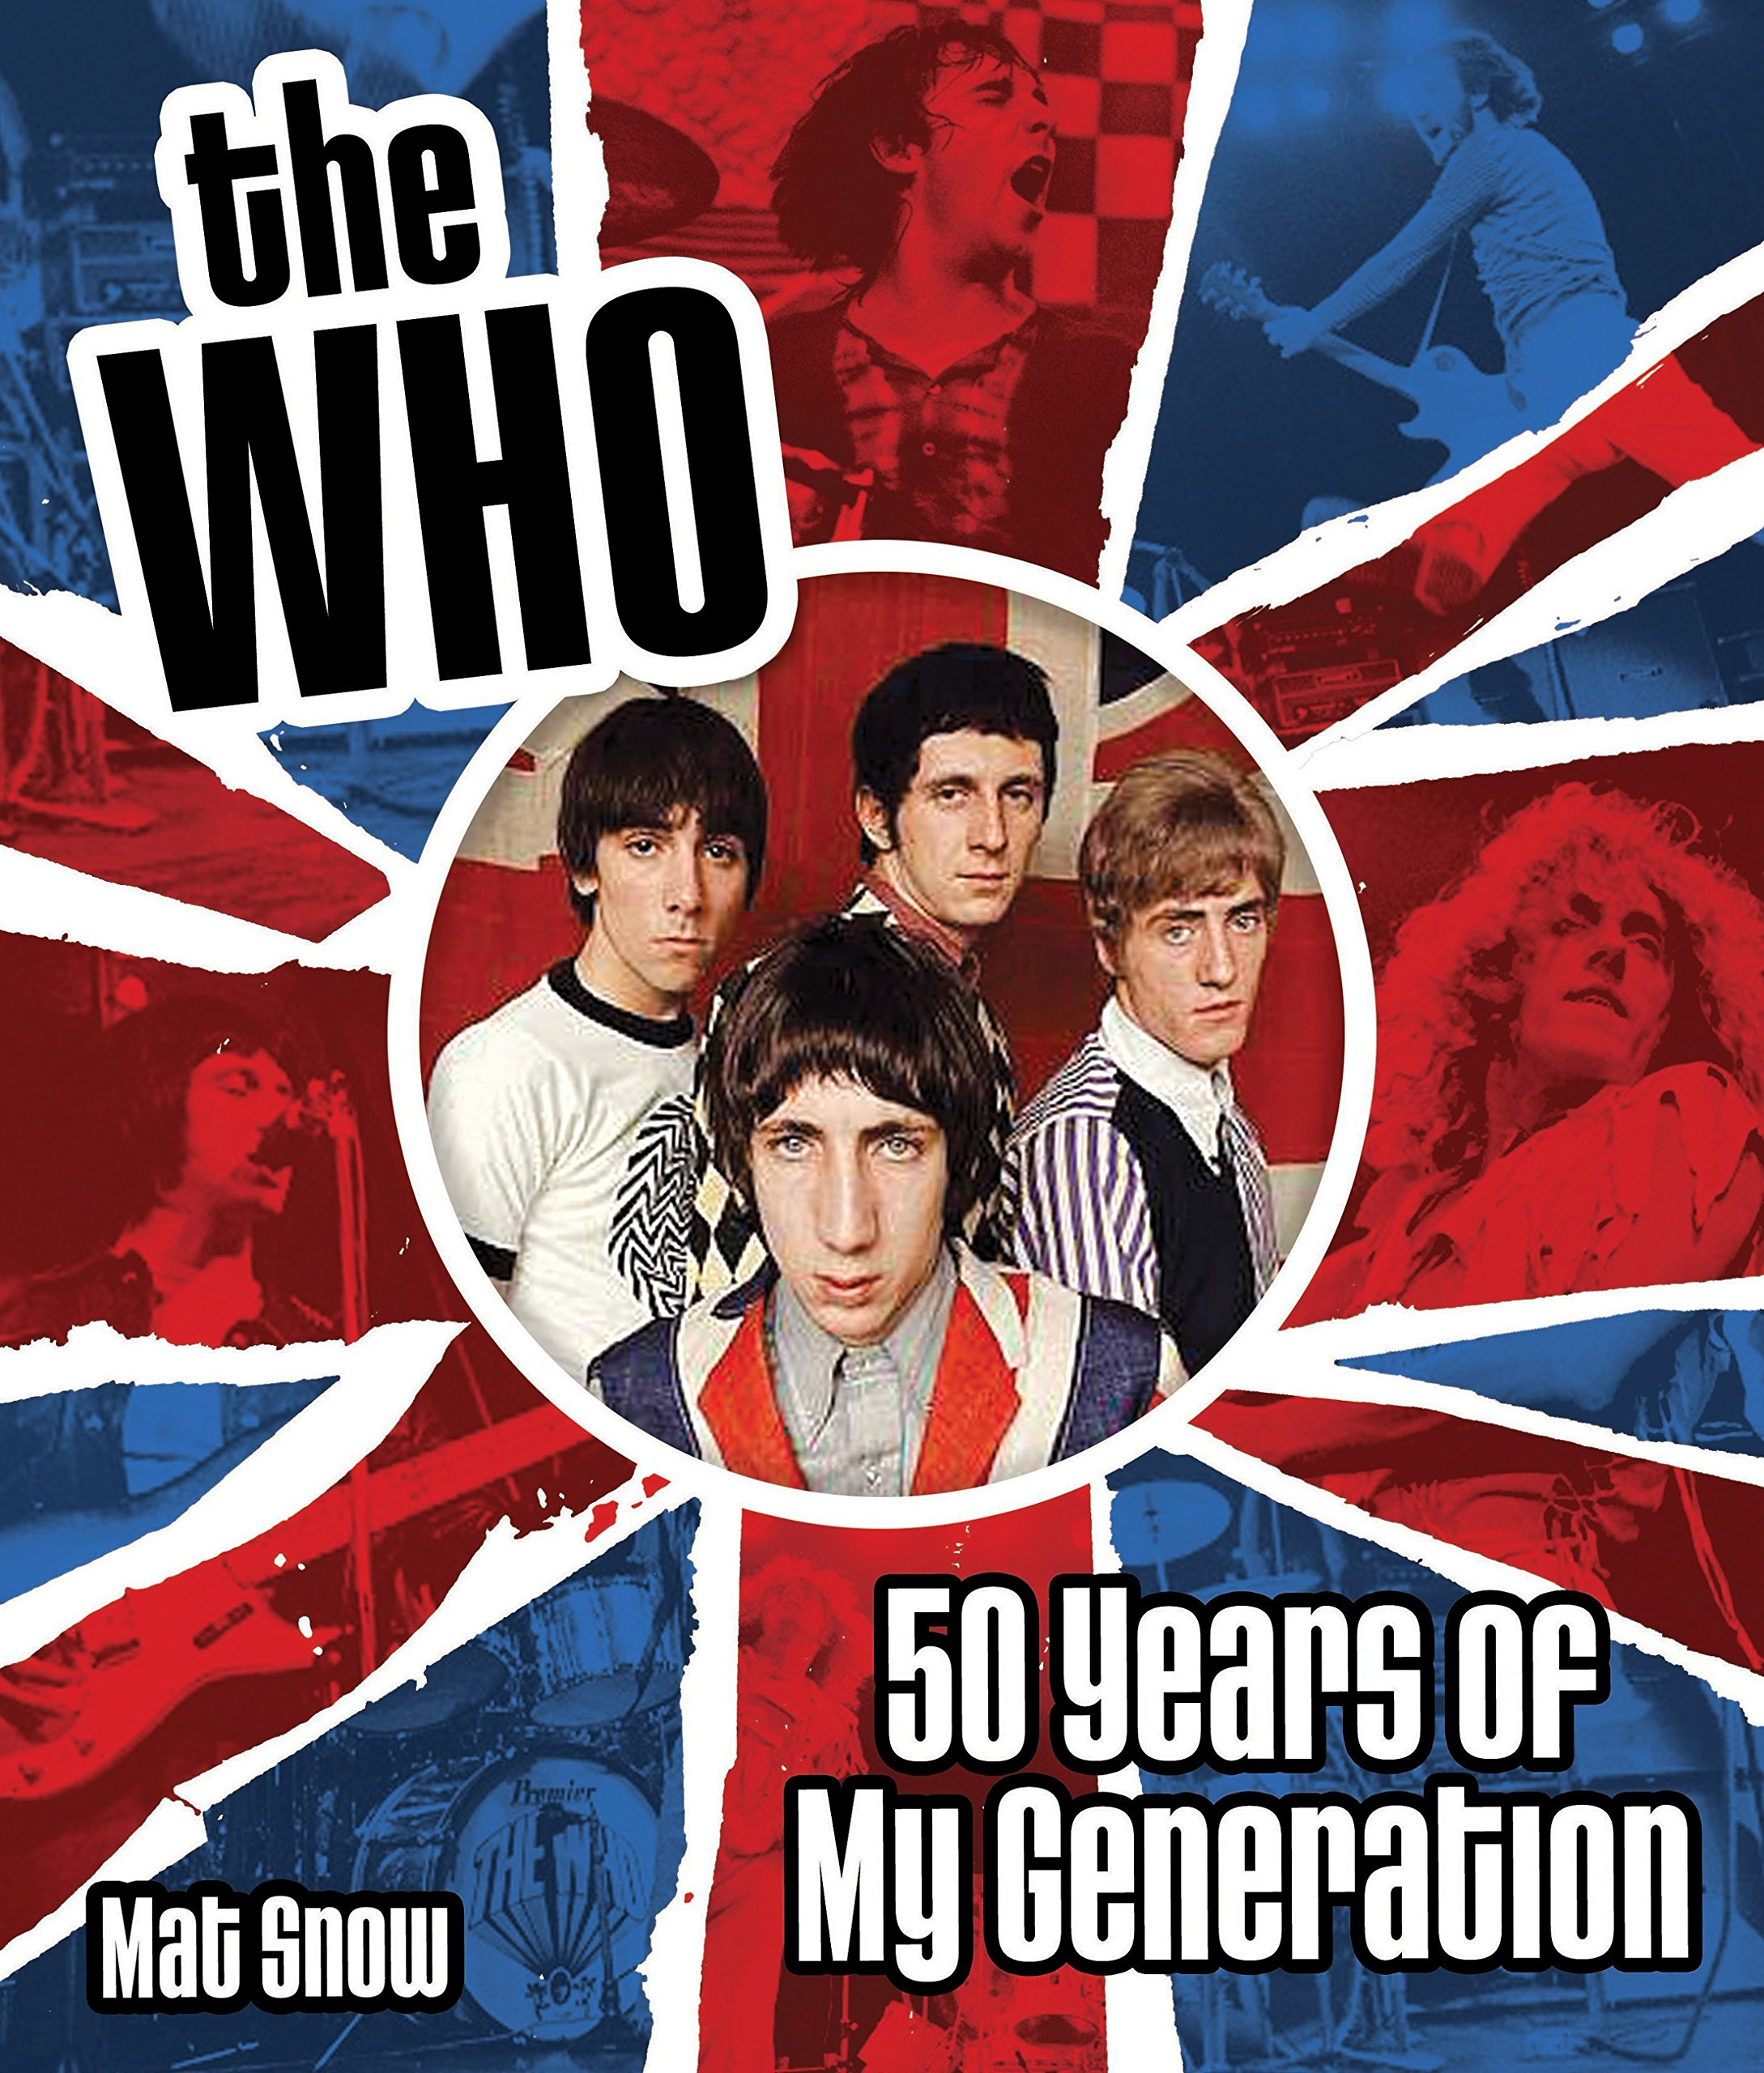 fc3968704 The Who  Fifty Years of My Generation  Mat Snow  9781631061615 ...